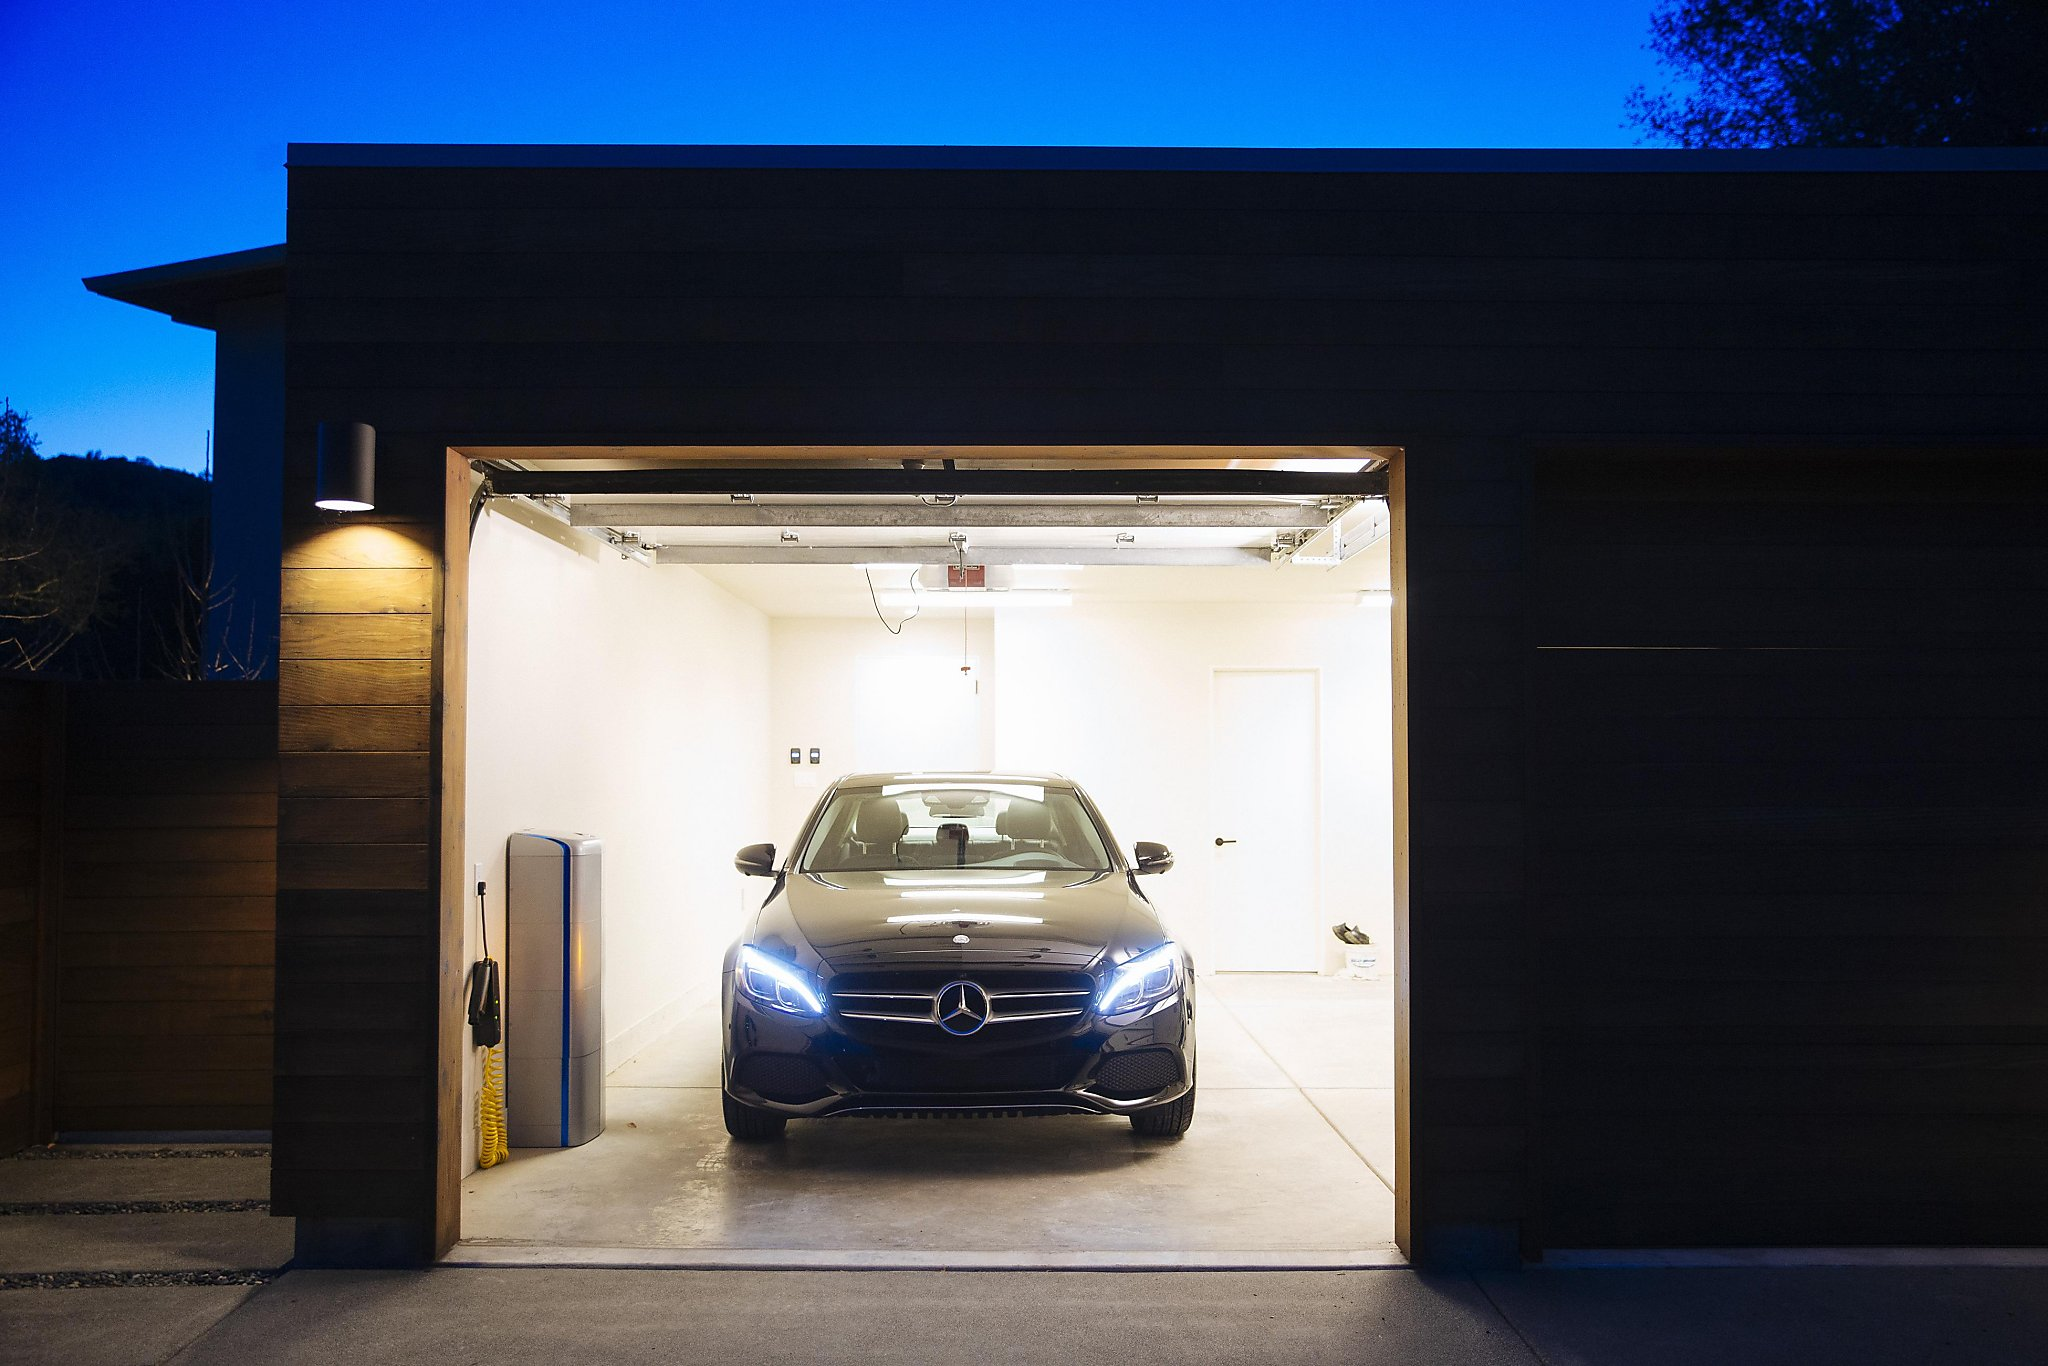 Vivint solar brings mercedes home batteries to u s sfgate for Mercedes benz energy storage system